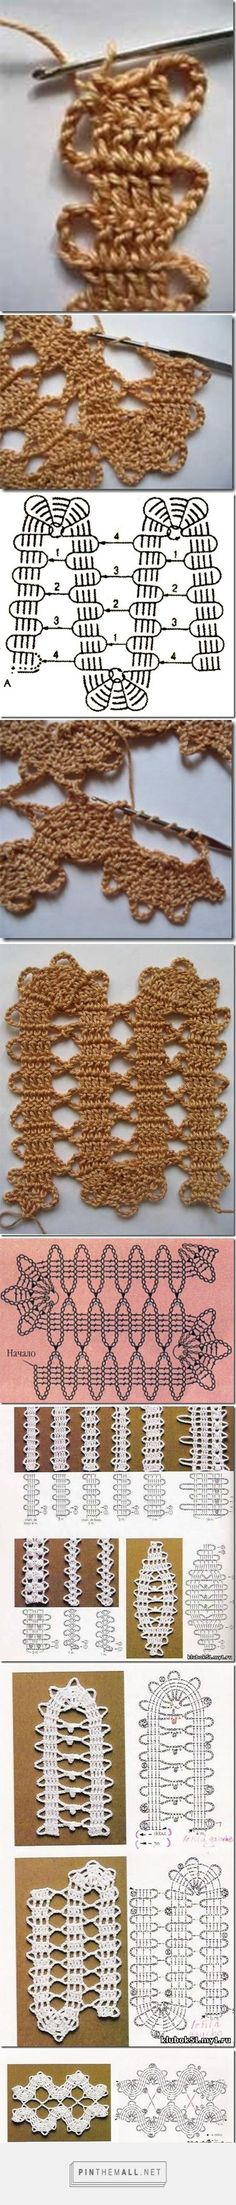 Crochet Bruges Lace How To loads of variations and photo tutorials